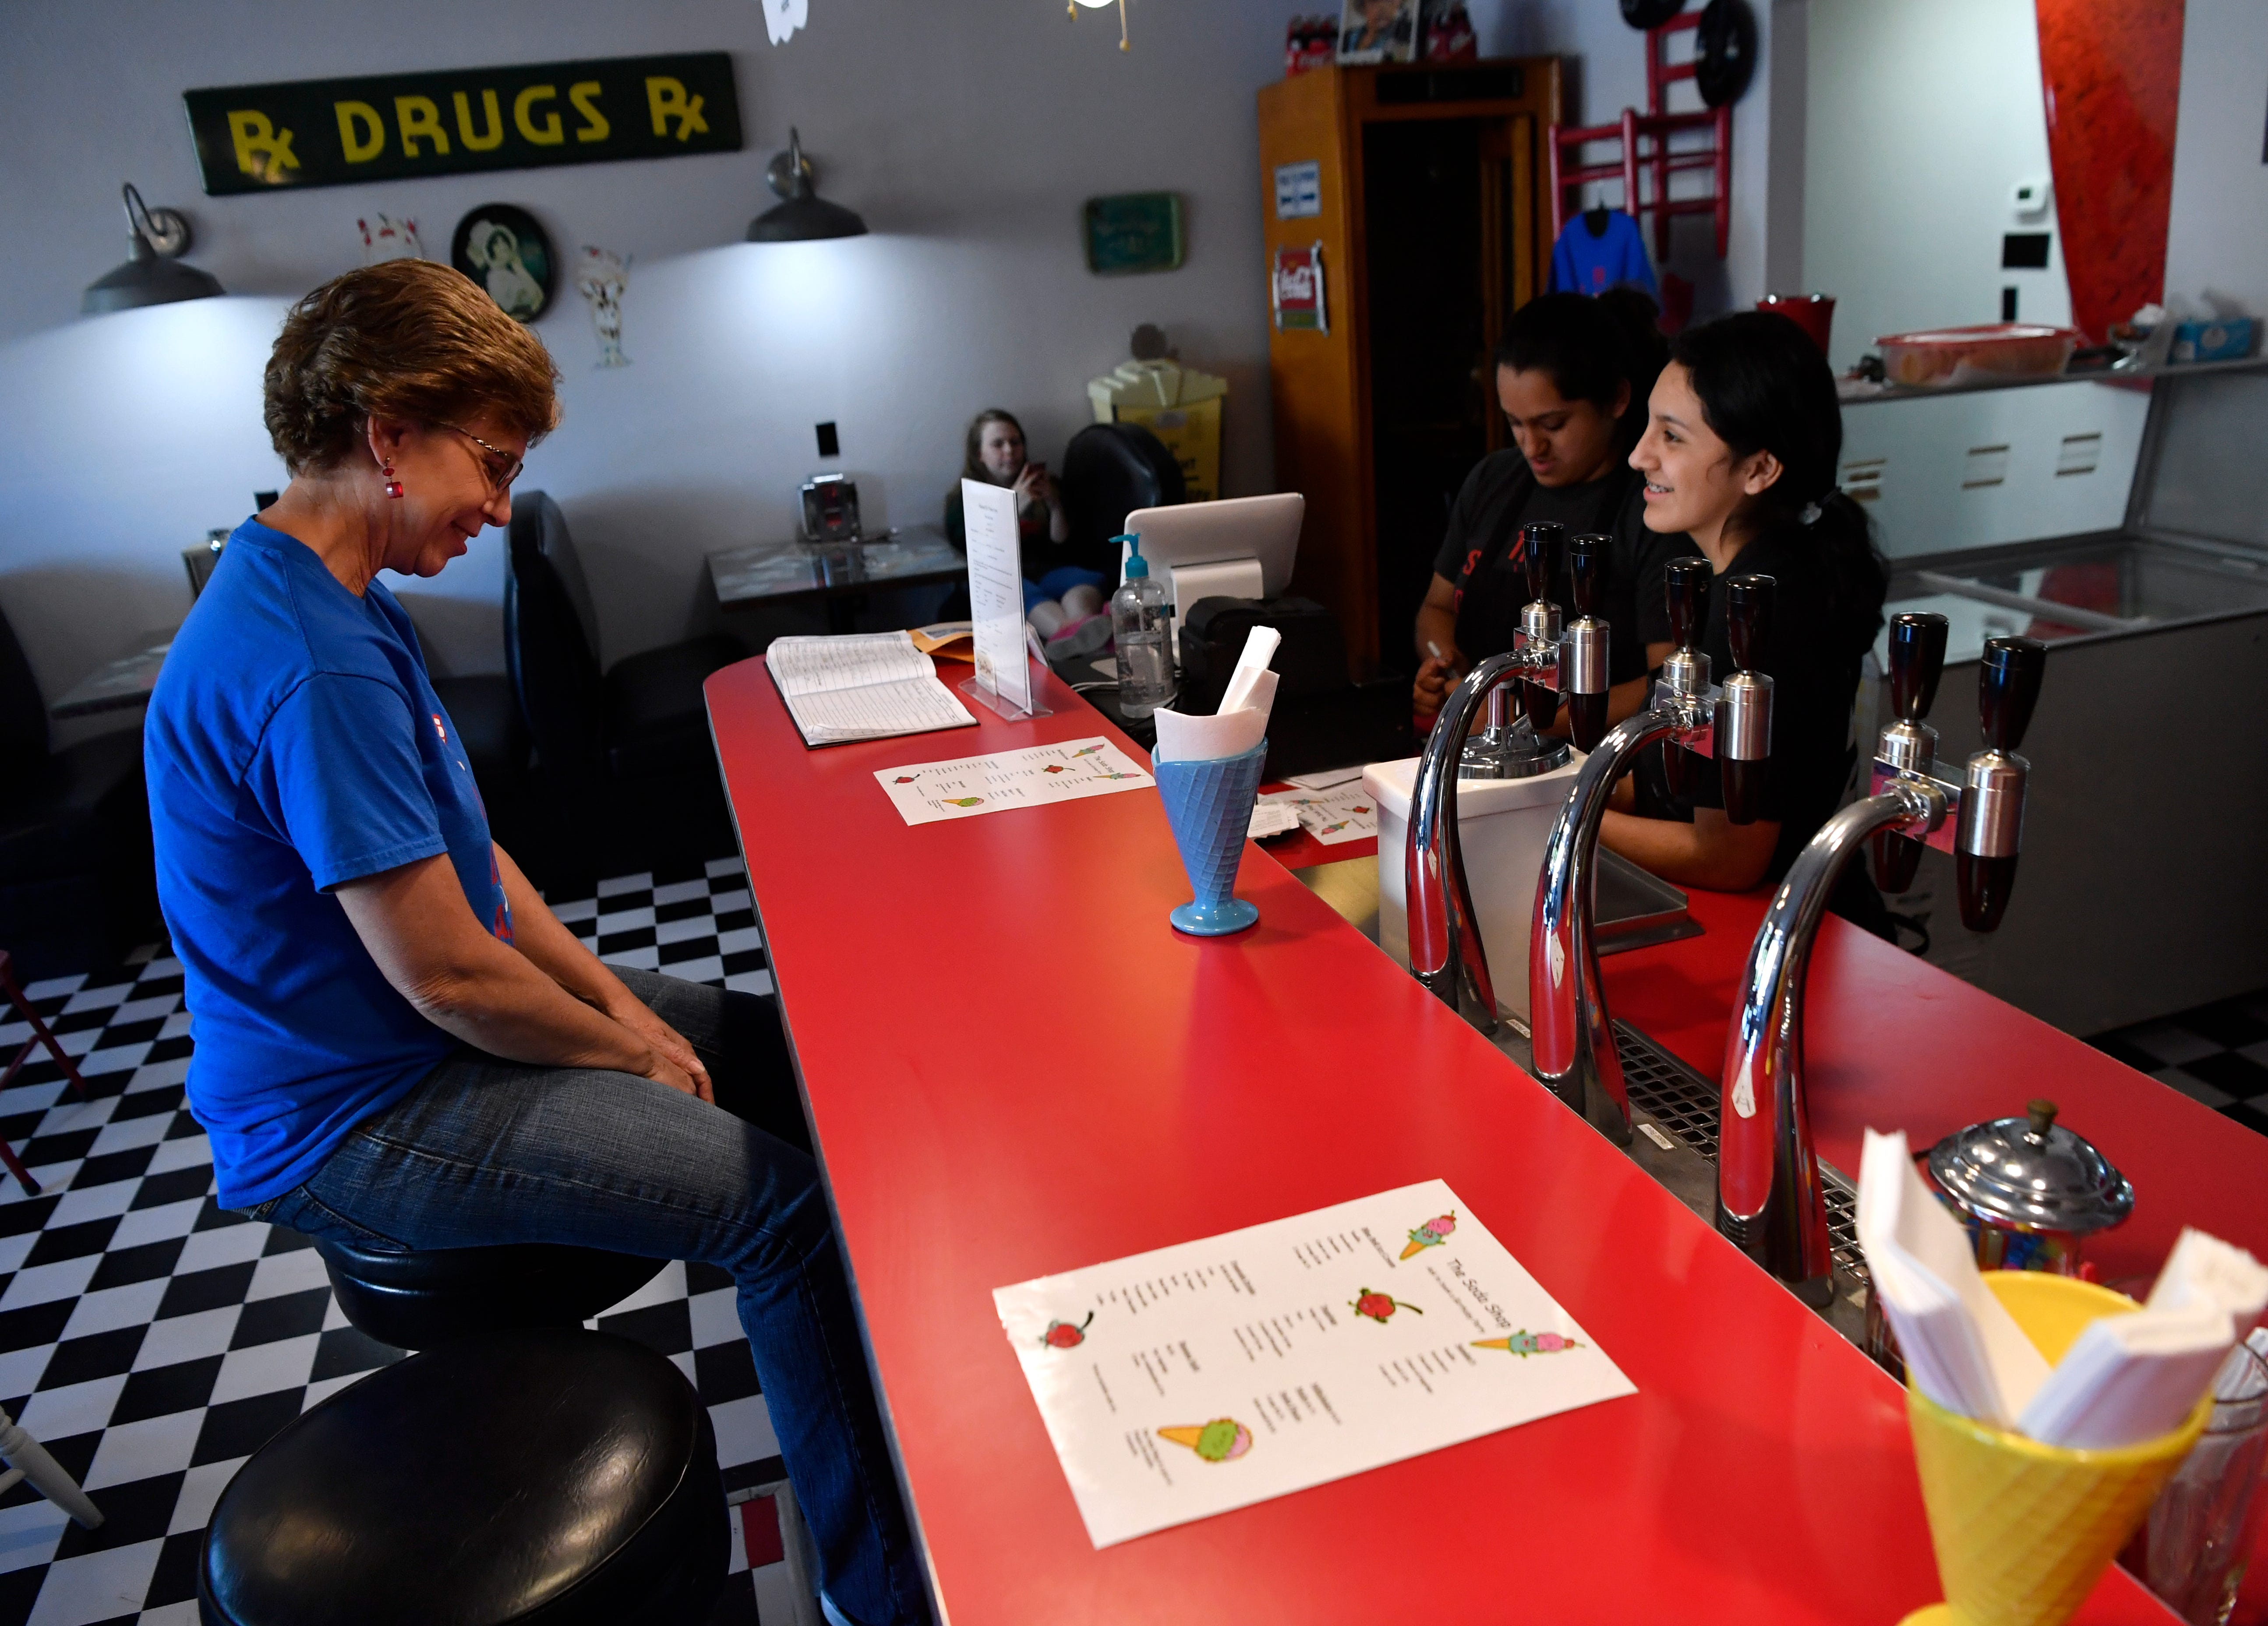 Kristi Taylor, the president of Revitalize Comanche, chats Friday with sisters Luisa and Sofia Jimenez inside the Soda Shop.